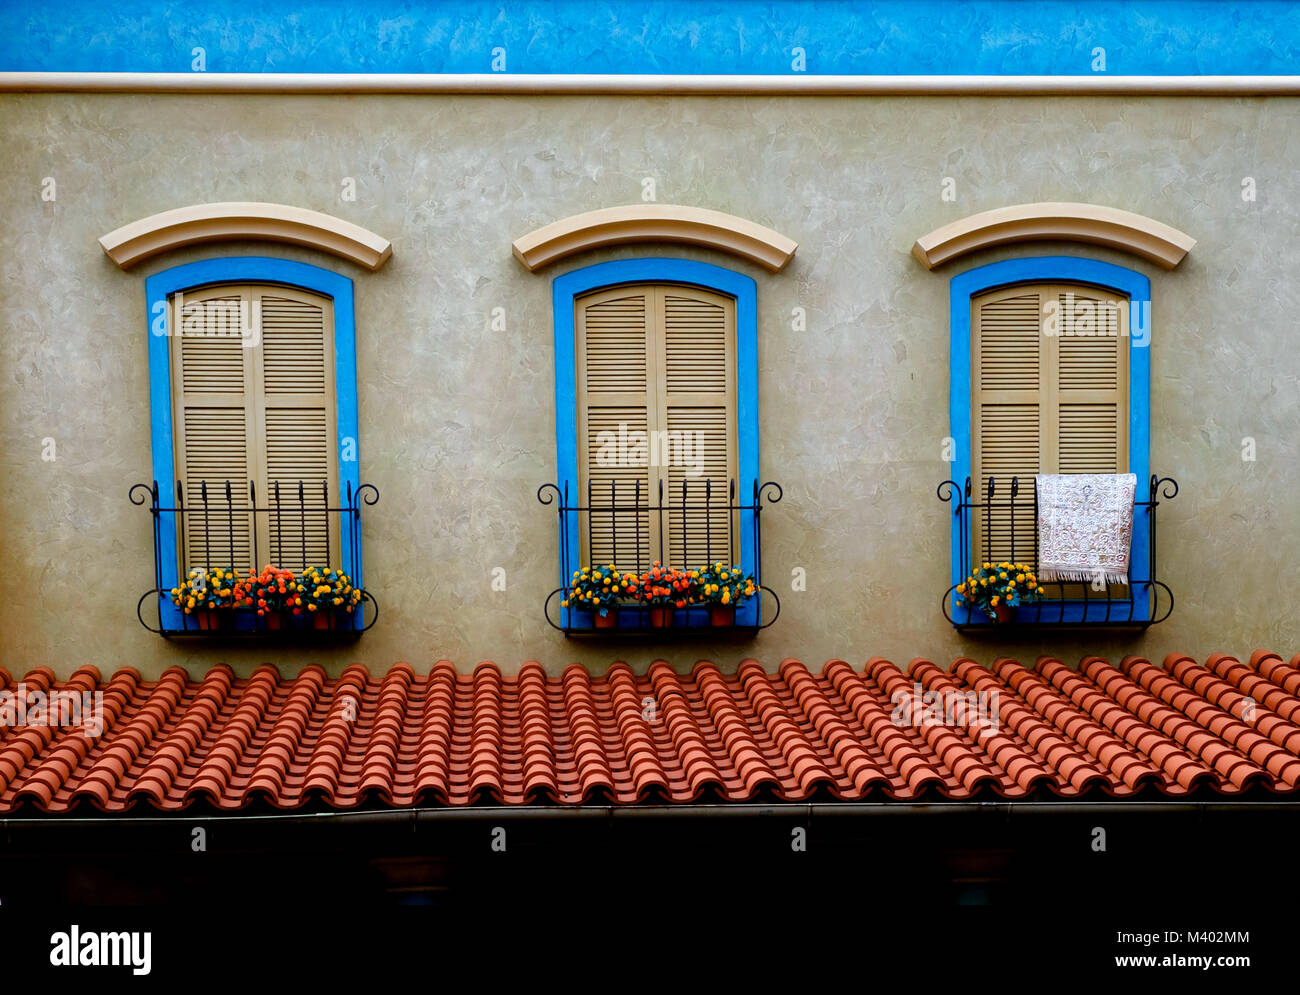 Three shuttered windows with wrought iron window boxes, bright flowers & blue frames. Terracotta orange roof. - Stock Image